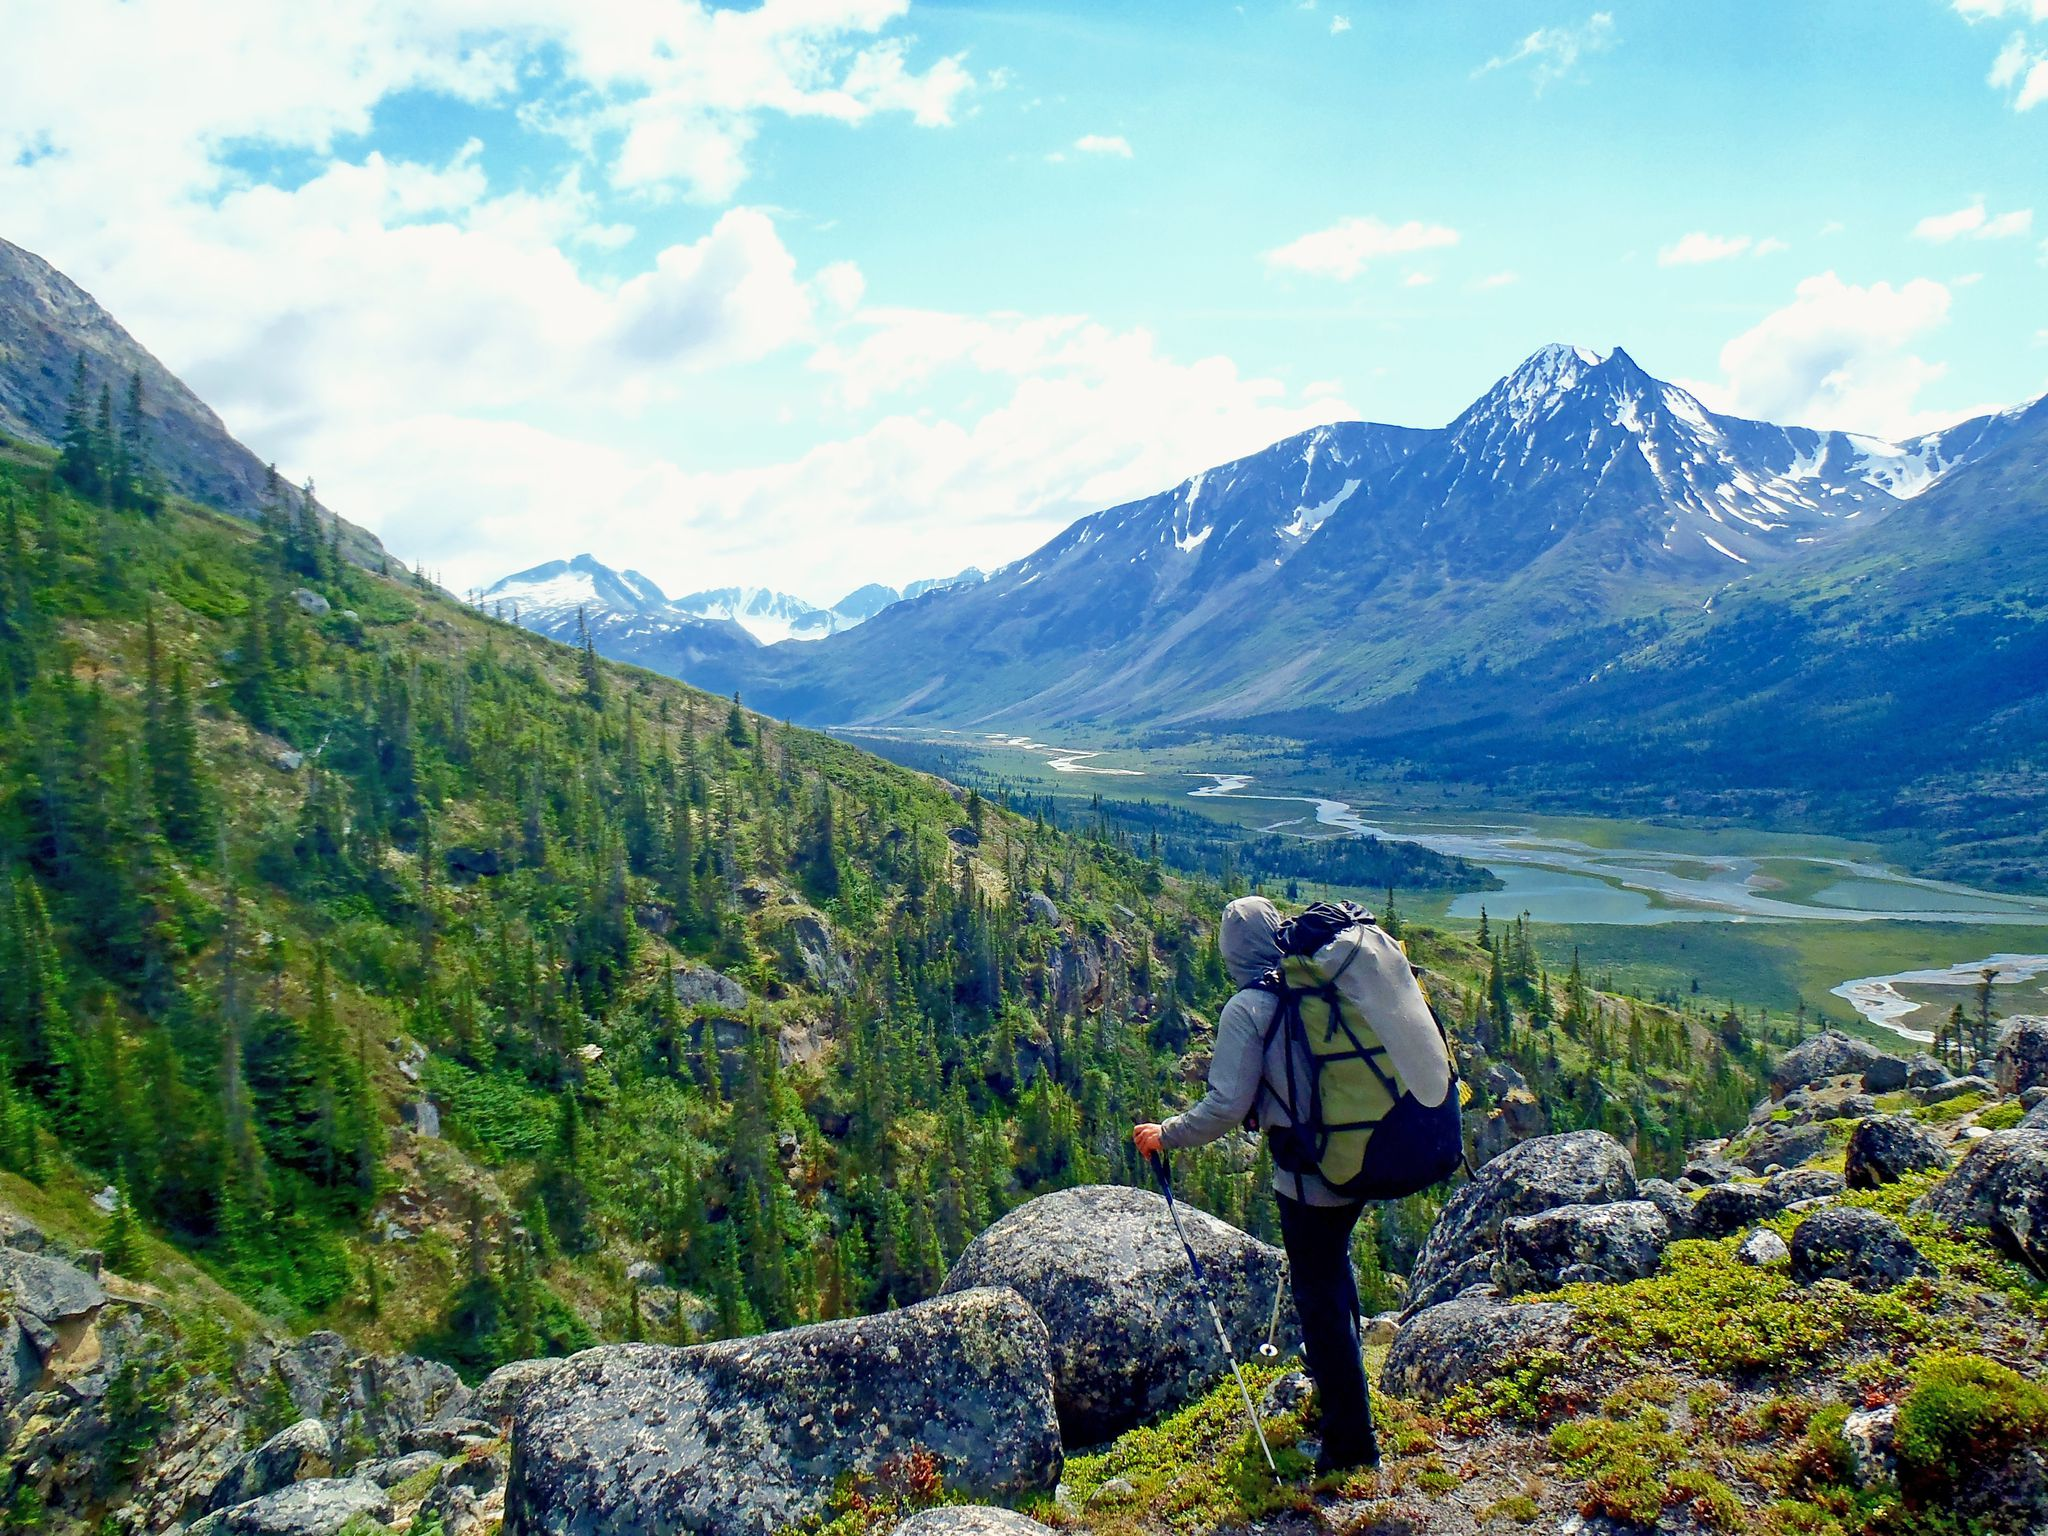 Summer Program - Hiking | NOLS Summer Semester in the Yukon